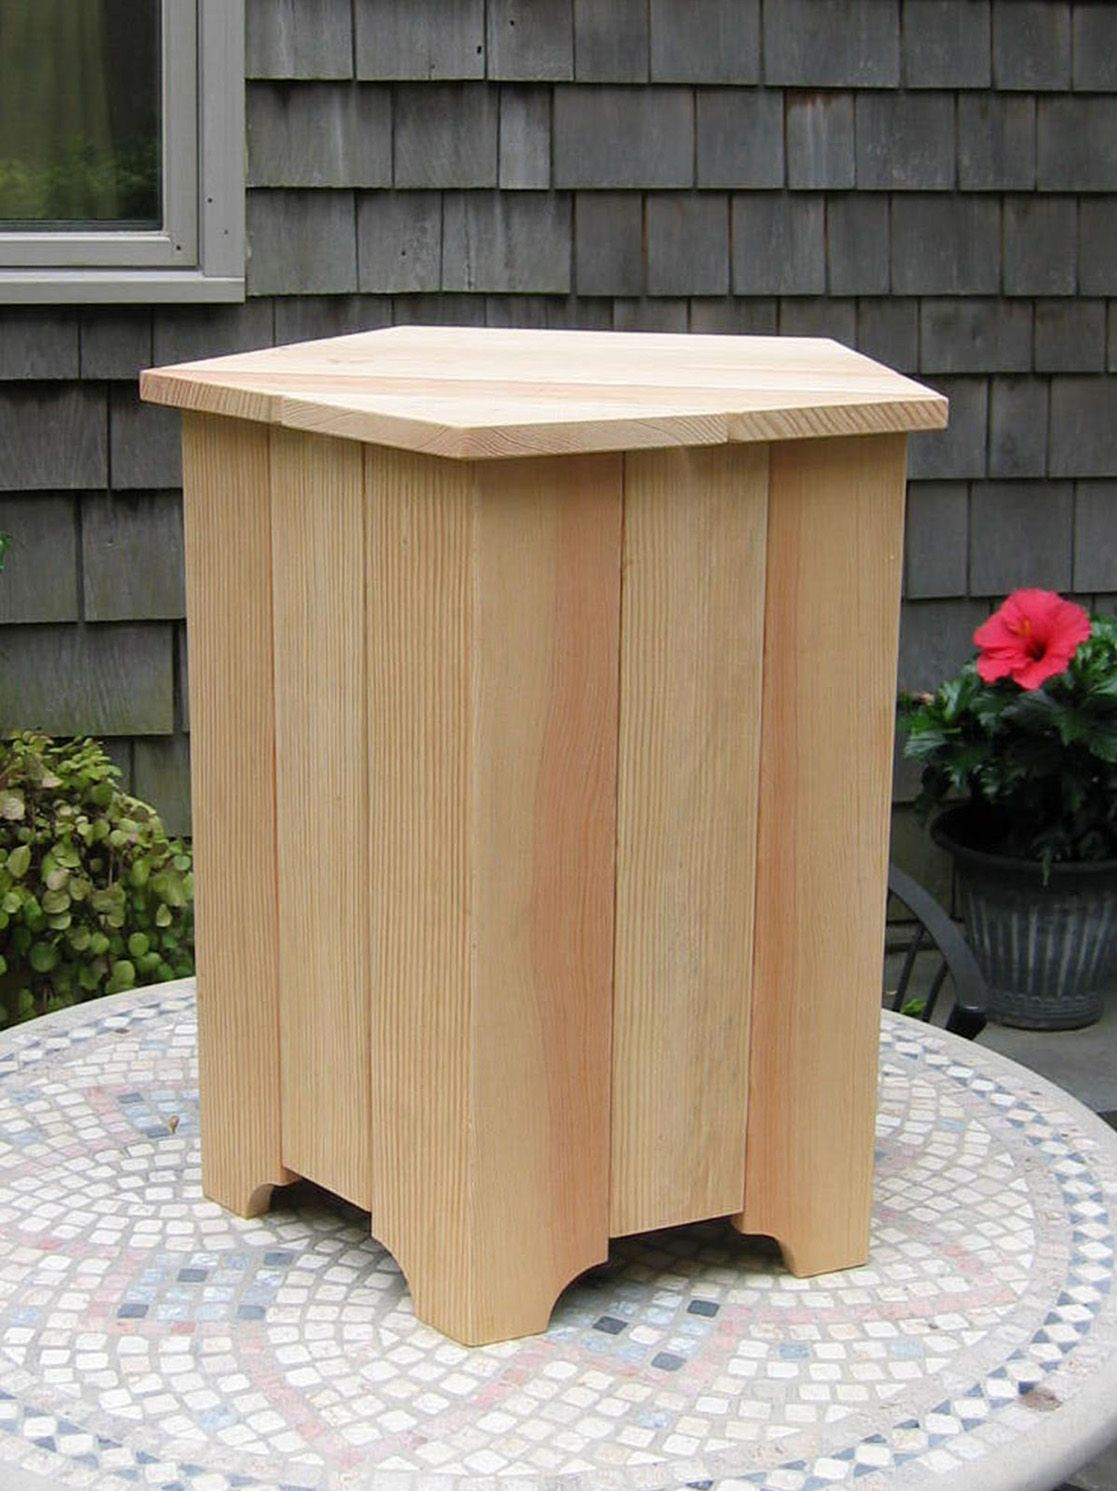 Wooden Propane Tank Box/Table